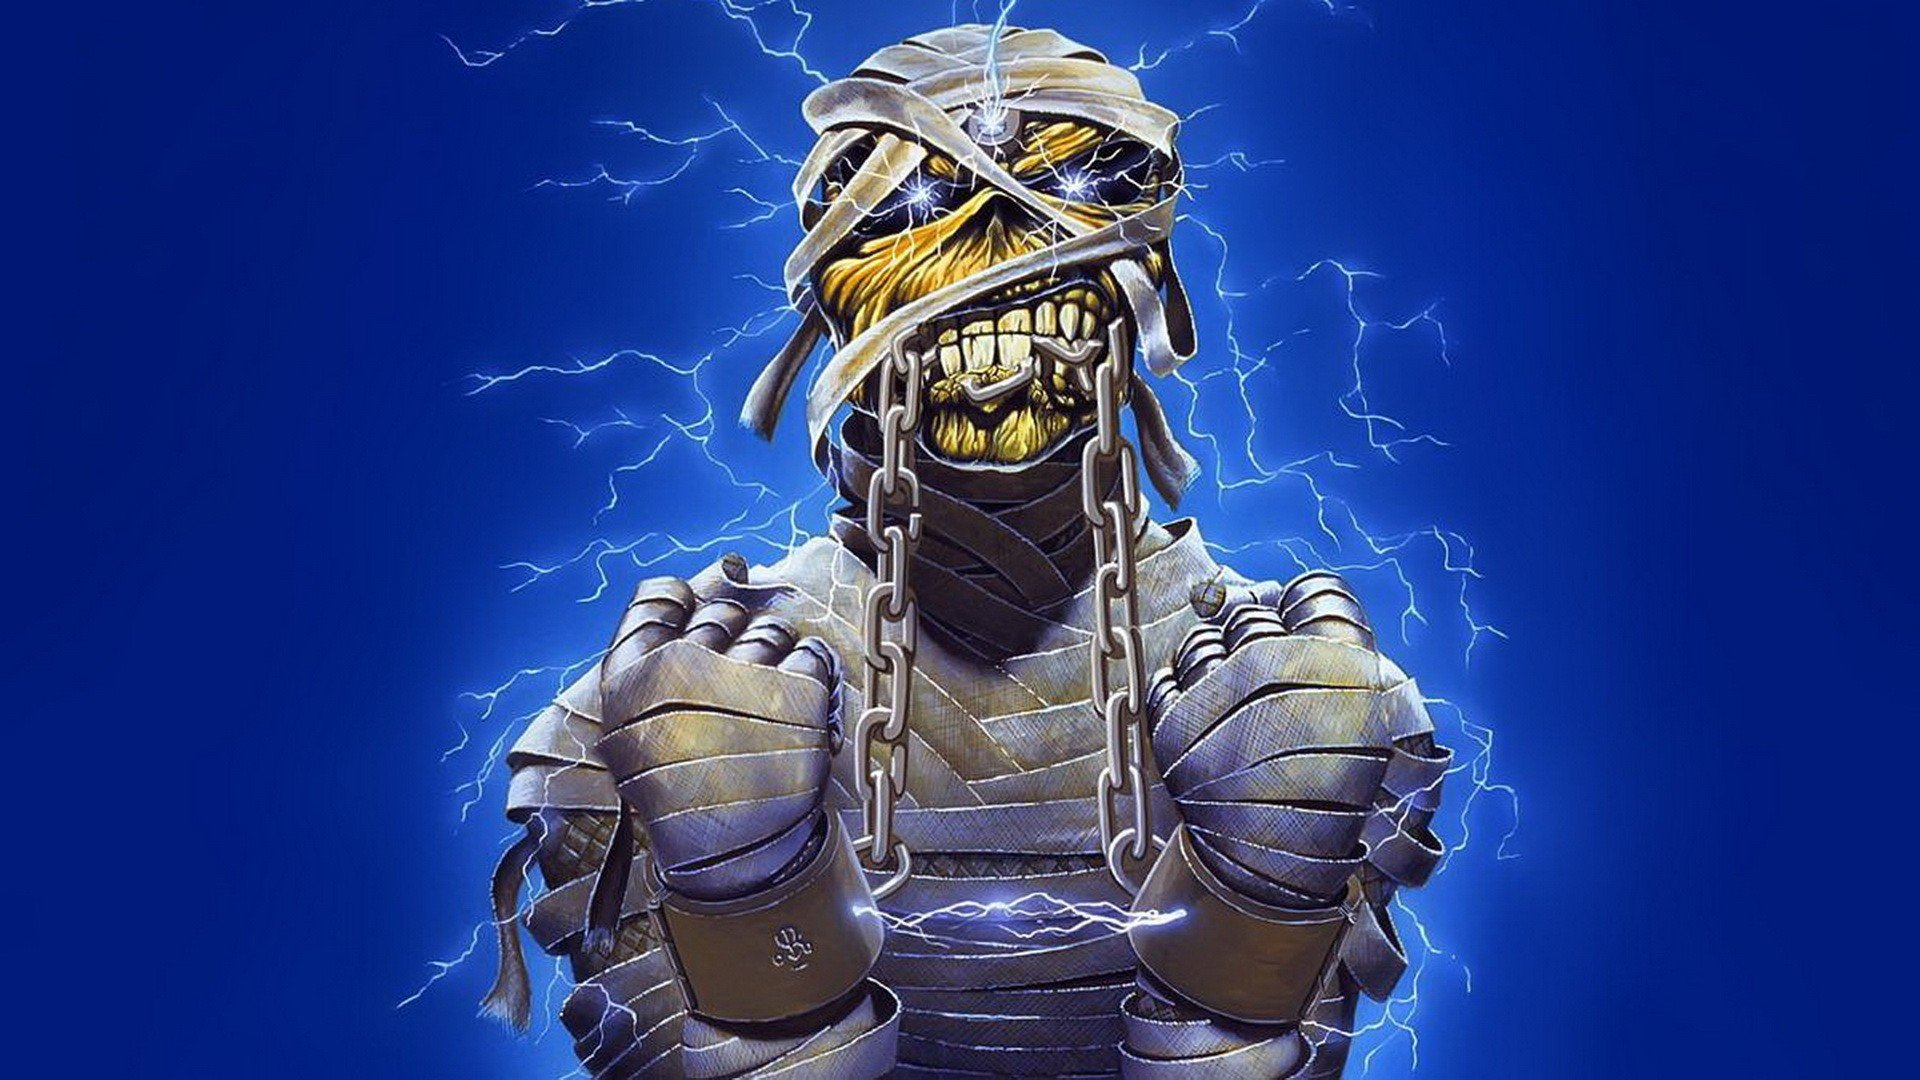 music monsters mummy iron maiden eddie wallpaper 1920x1080 338125 wallpaperup. Black Bedroom Furniture Sets. Home Design Ideas